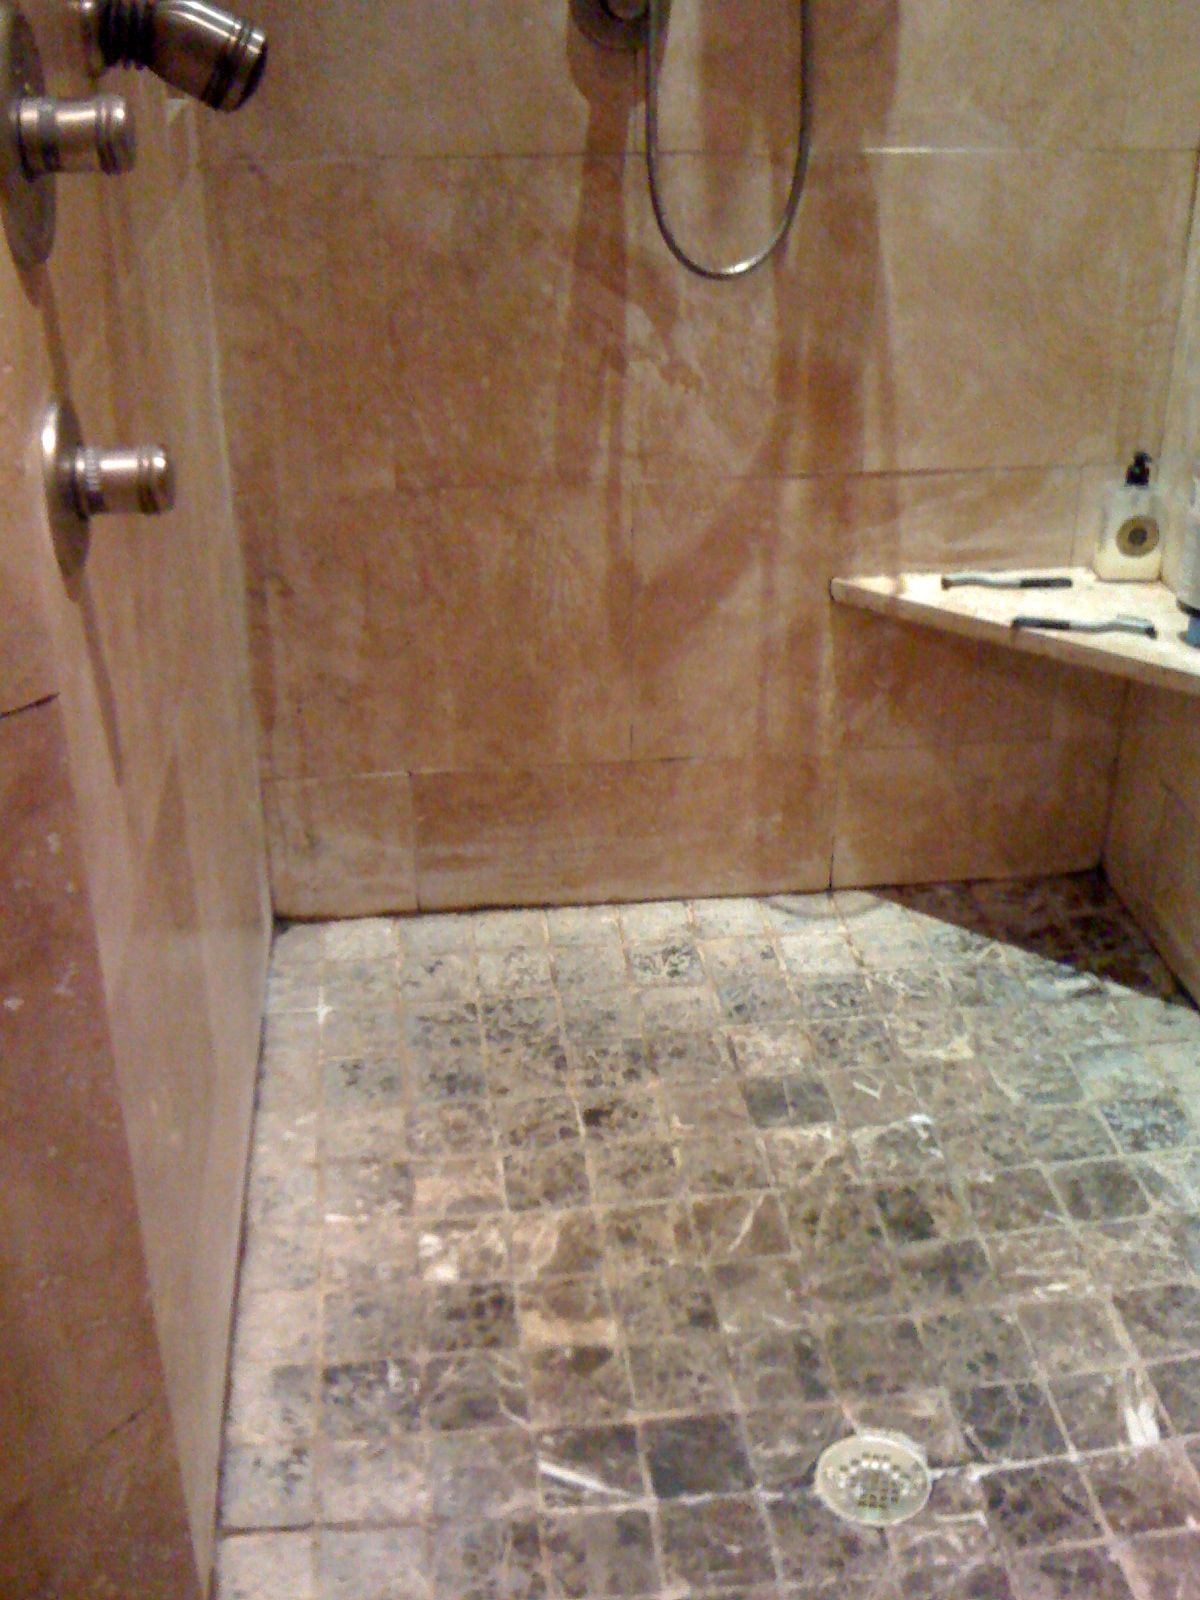 Tile is the result of an improperly installed shower. Mold